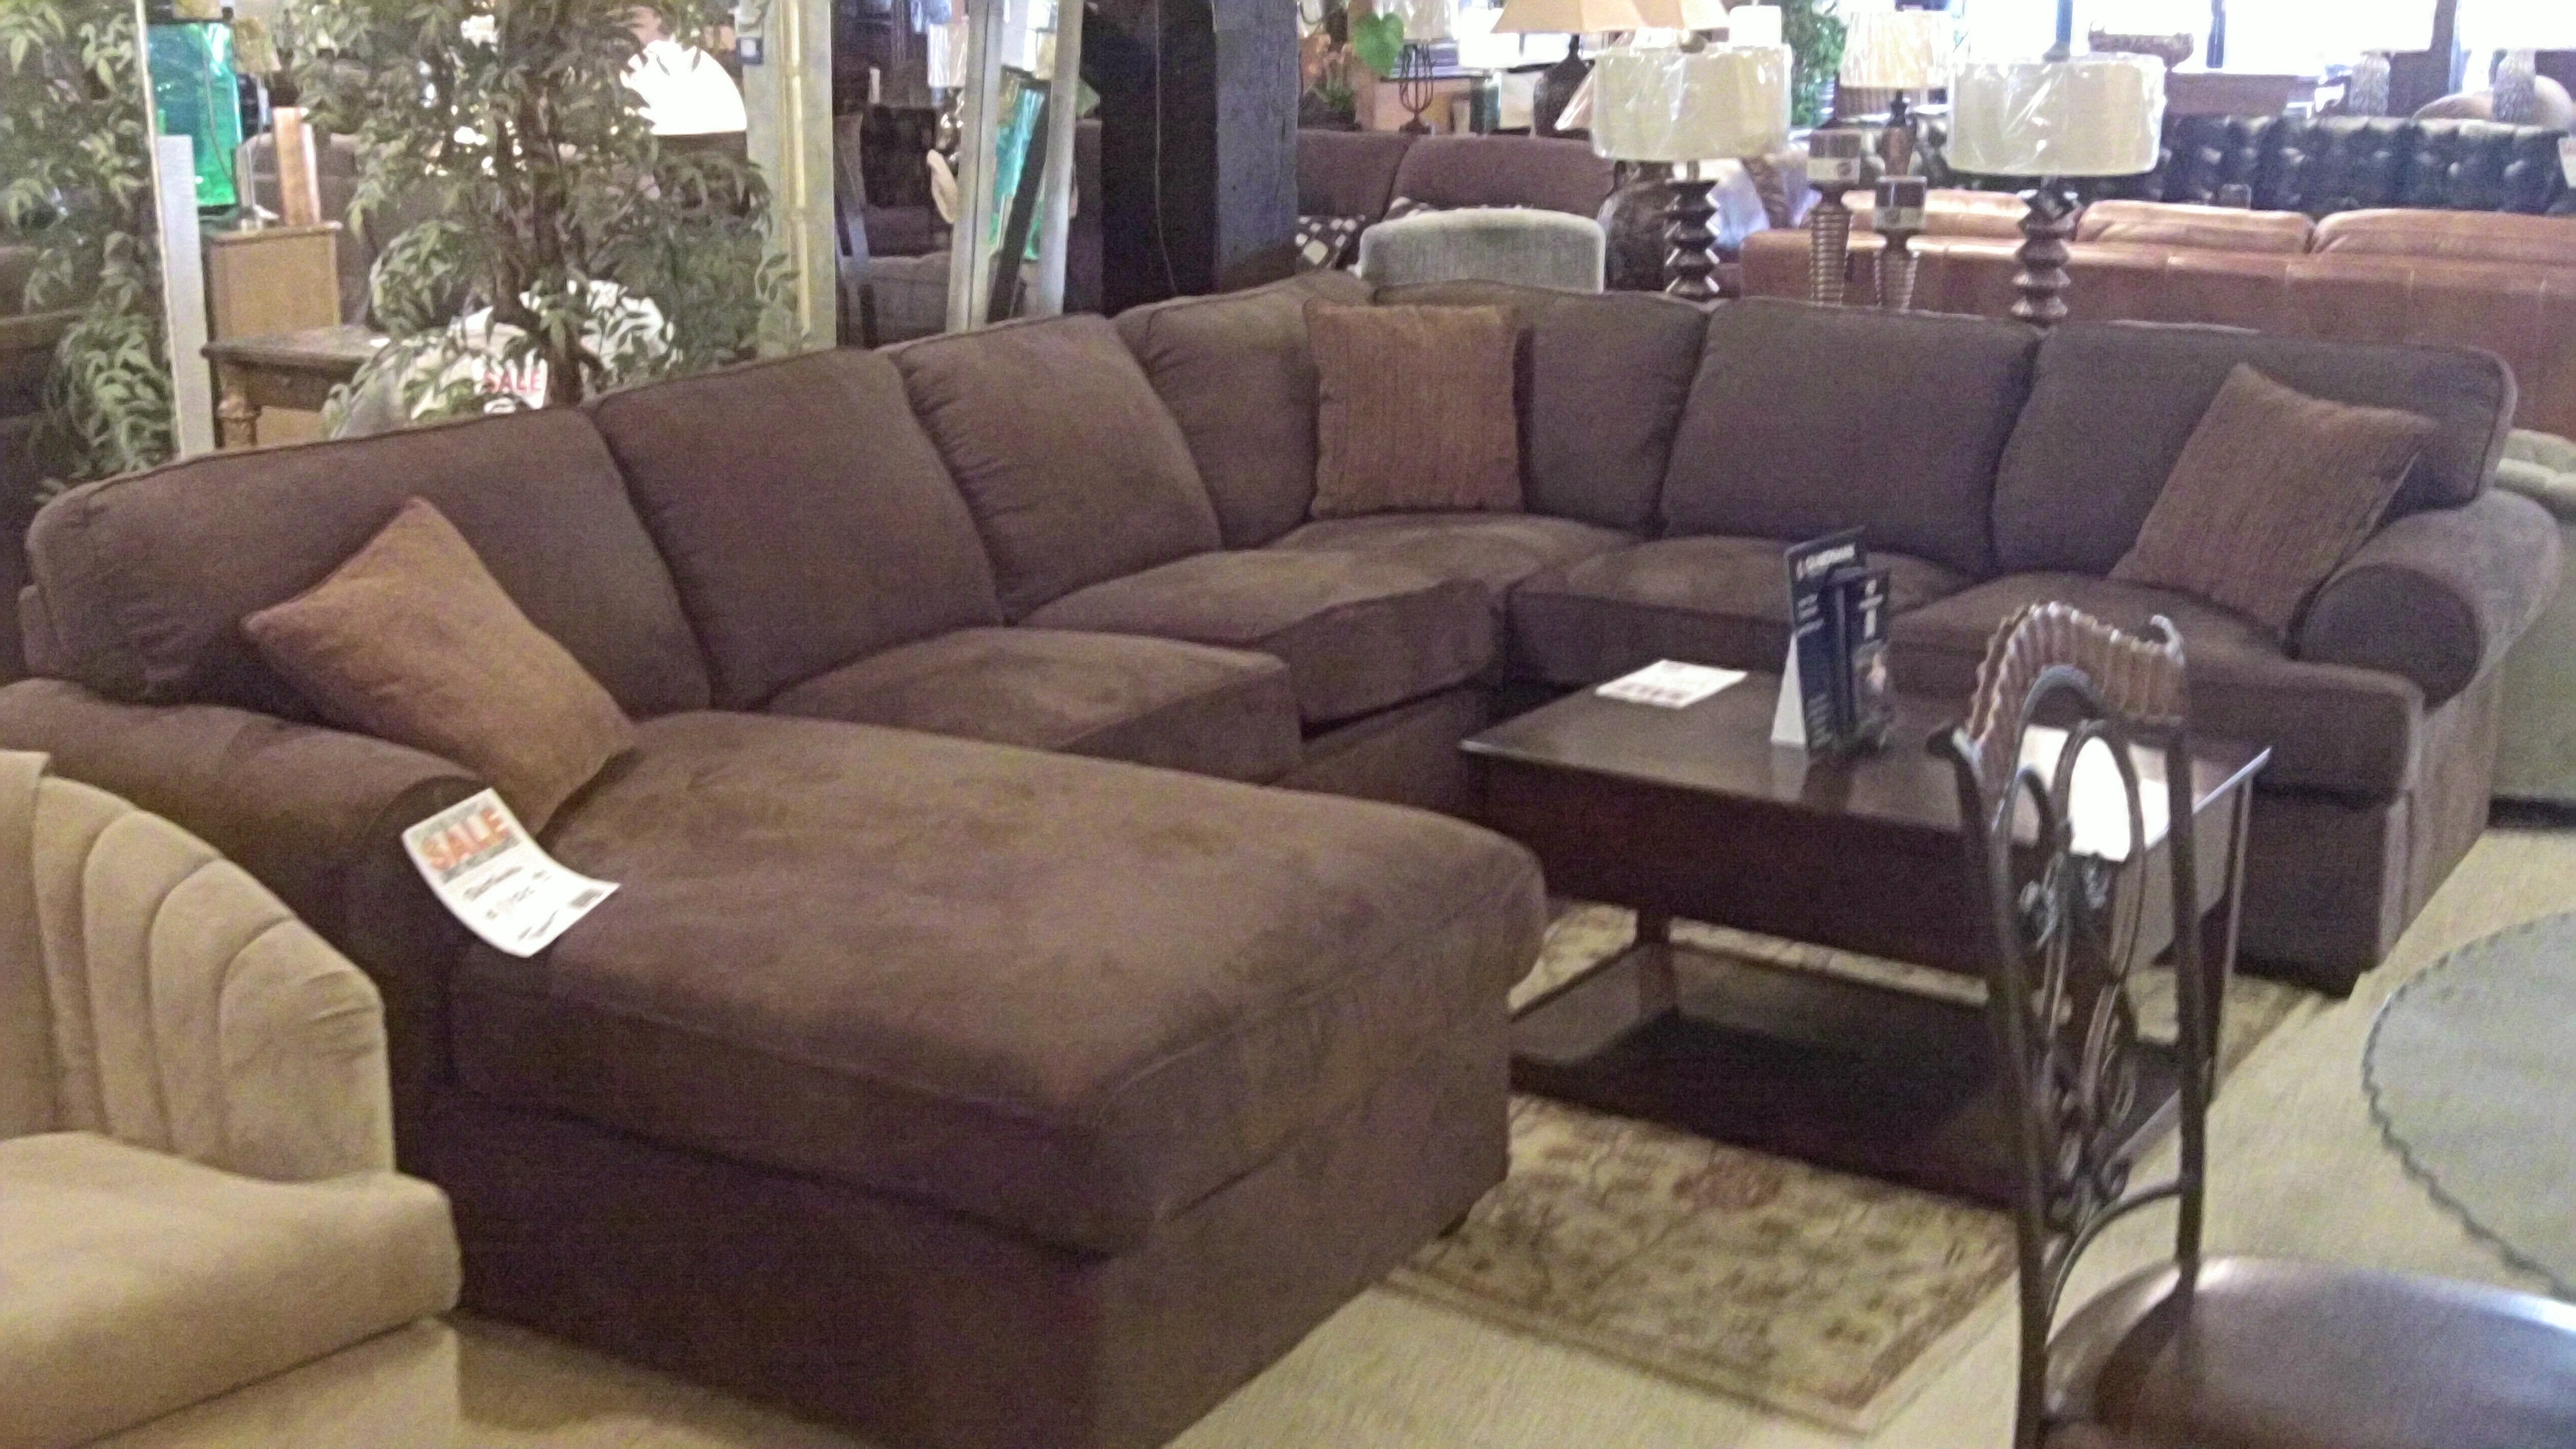 Sectional Leather Sofas | Reclining Sectional | Large Sectional Sofas